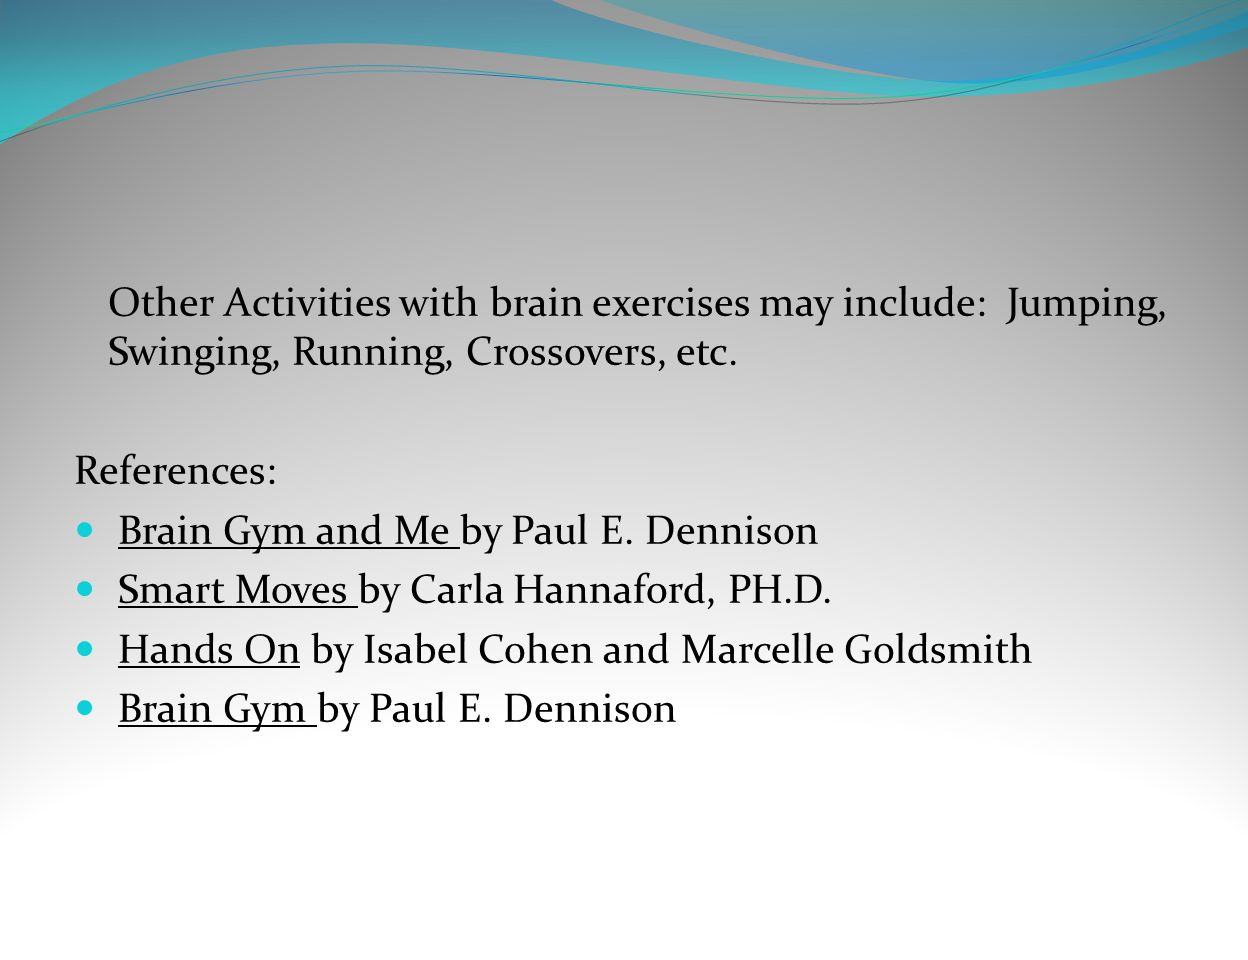 Other Activities with brain exercises may include: Jumping, Swinging, Running, Crossovers, etc. References: Brain Gym and Me by Paul E. Dennison Smart